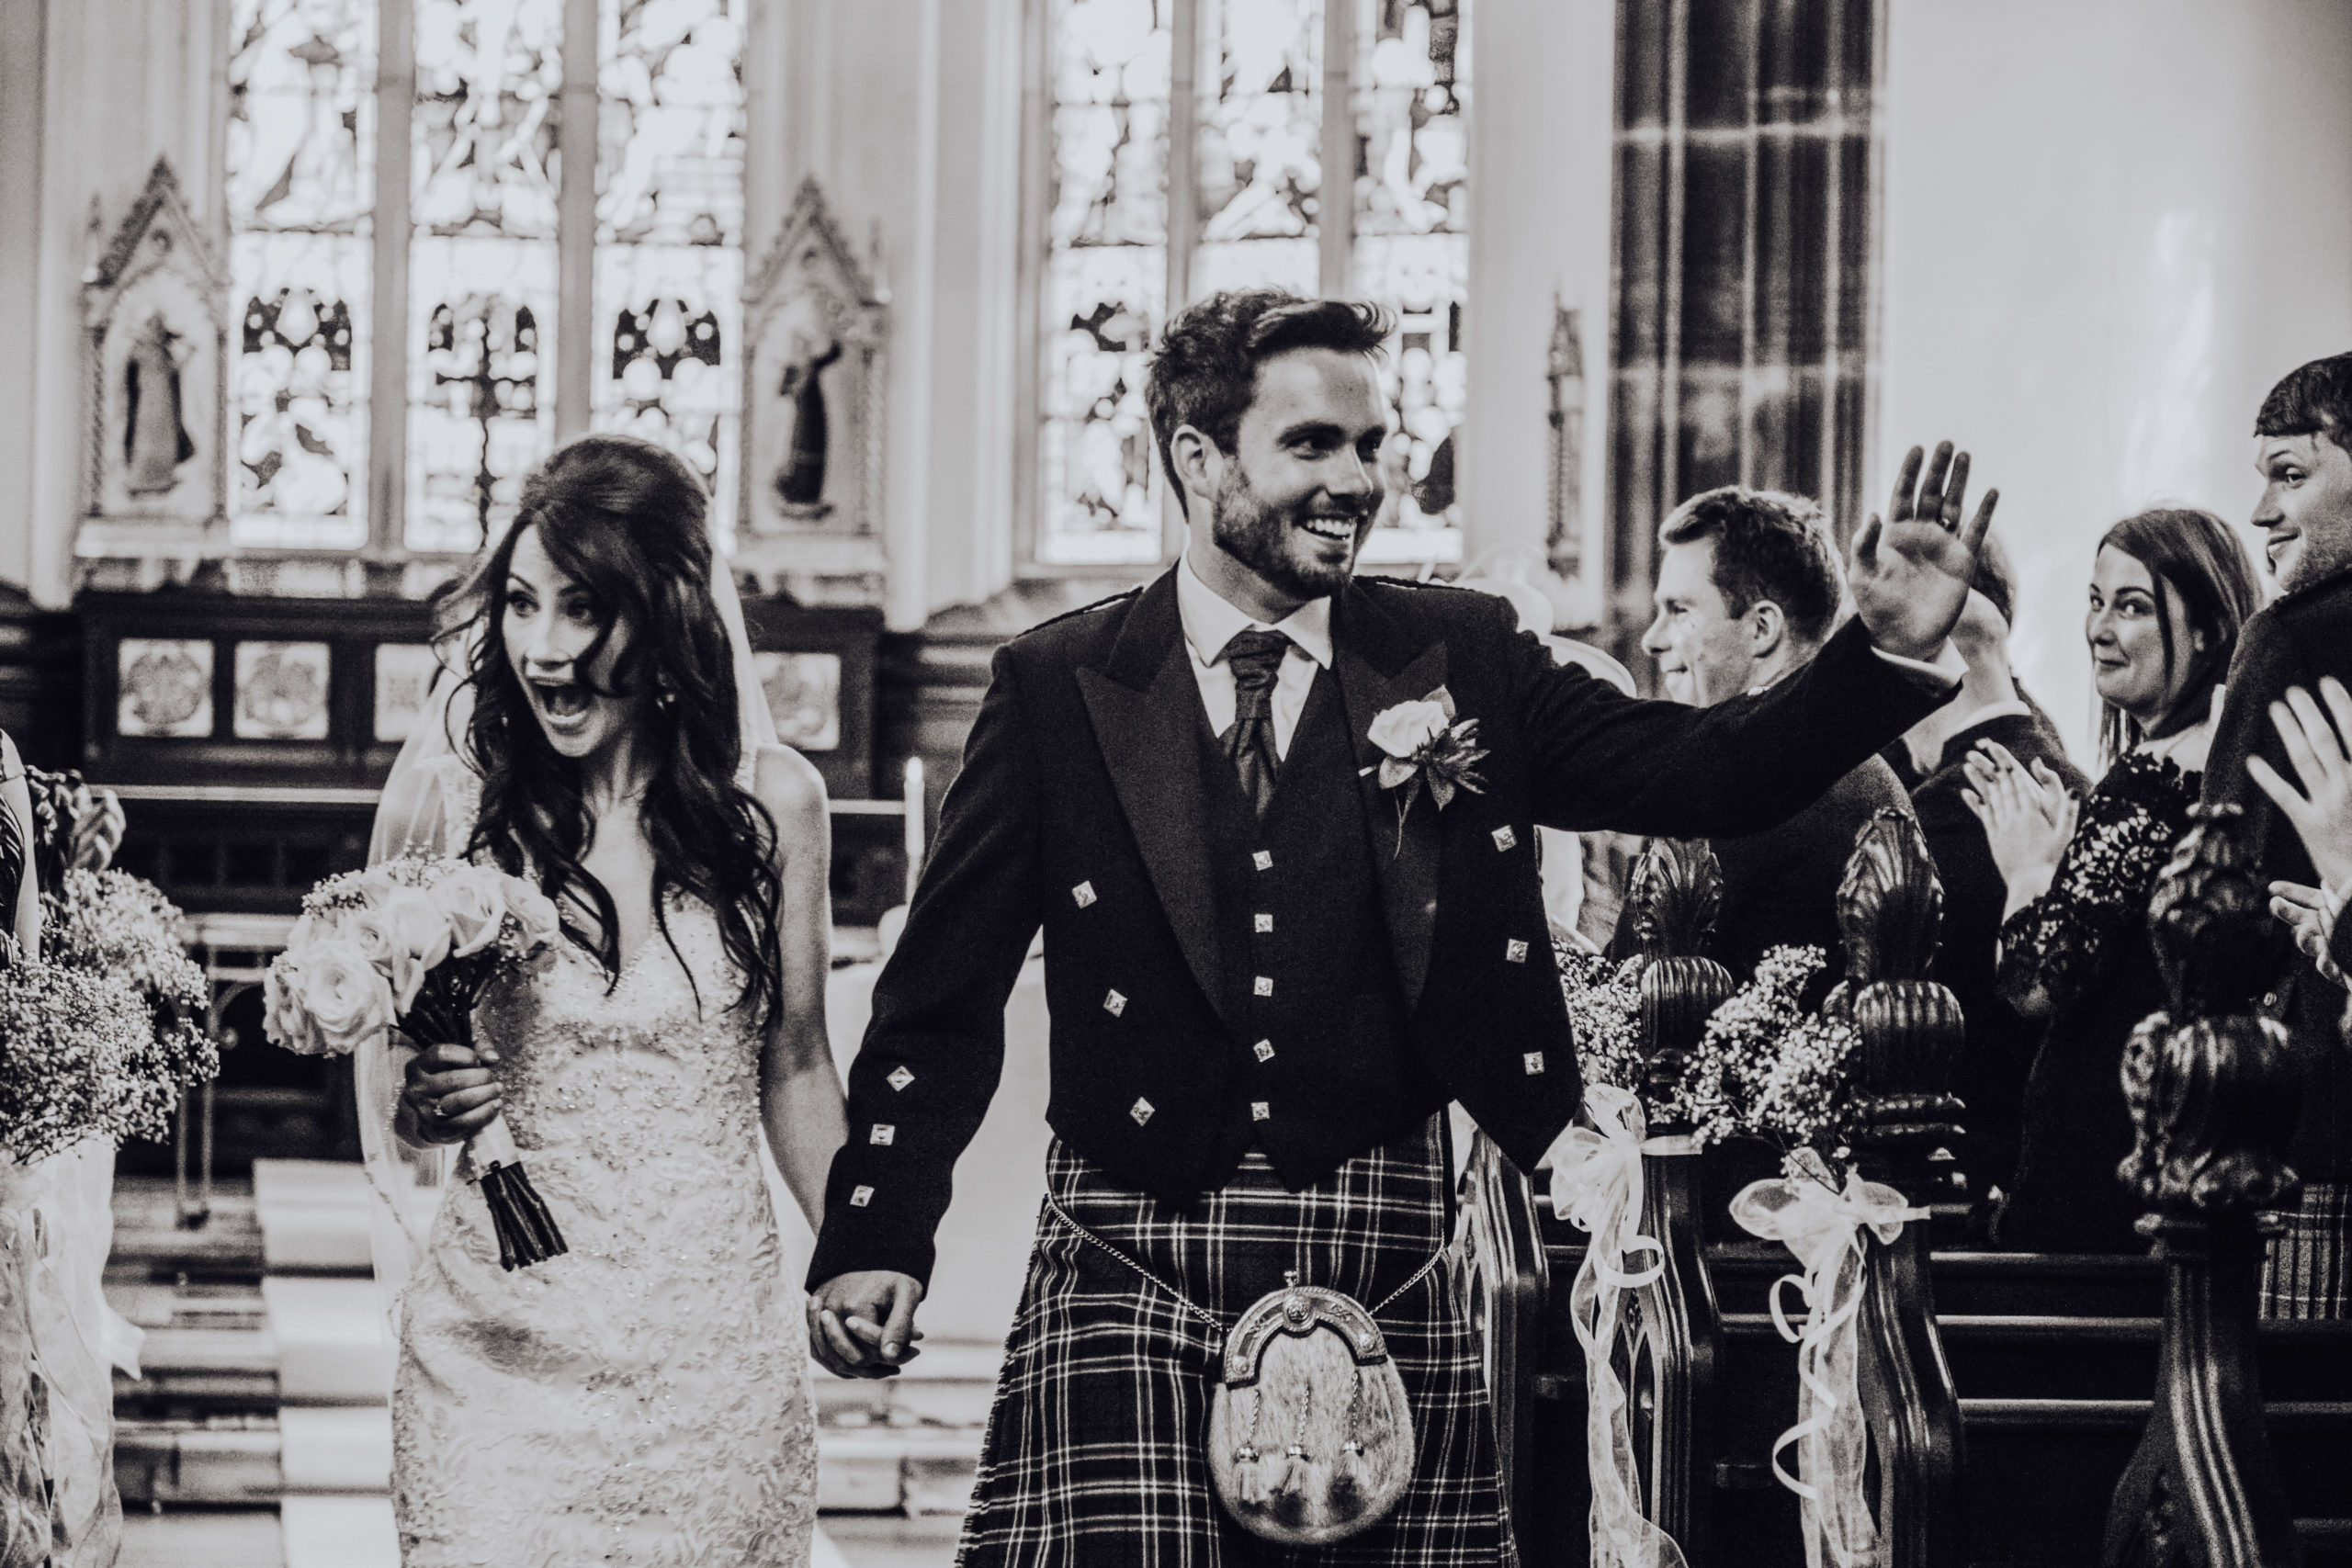 Danielle and Chris wedding at Cluny Castle